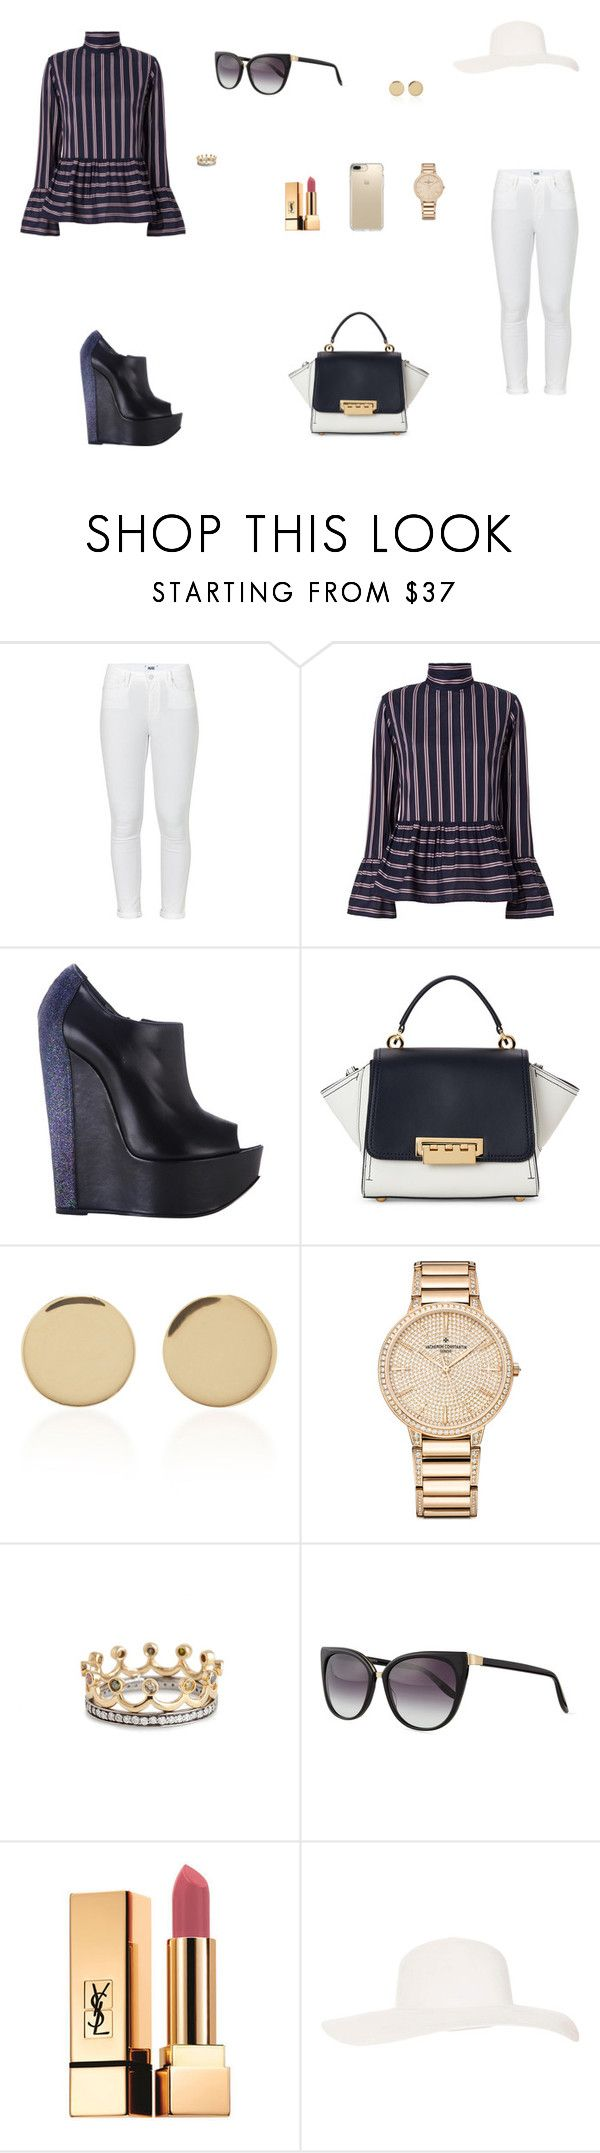 """Look do Dia"" by julianaf121 ❤ liked on Polyvore featuring Paige Denim, Le Sarte Pettegole, Ruthie Davis, ZAC Zac Posen, Magdalena Frackowiak, Vacheron Constantin, Bochic, Barton Perreira, Yves Saint Laurent and Topshop"